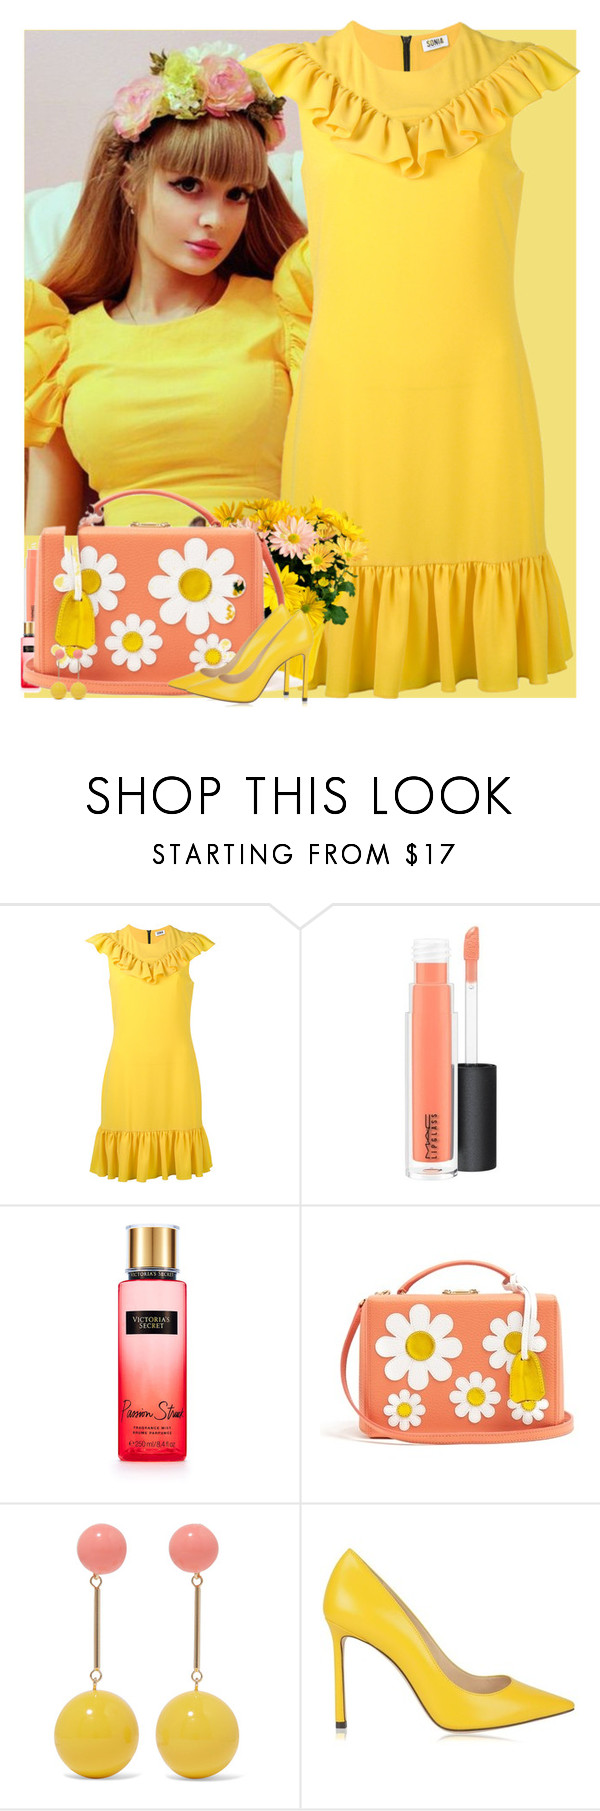 """Bez naslova #3250"" by gita016 ❤ liked on Polyvore featuring Sonia by Sonia Rykiel, MAC Cosmetics, Victoria's Secret, Mark Cross, J.W. Anderson and Jimmy Choo"